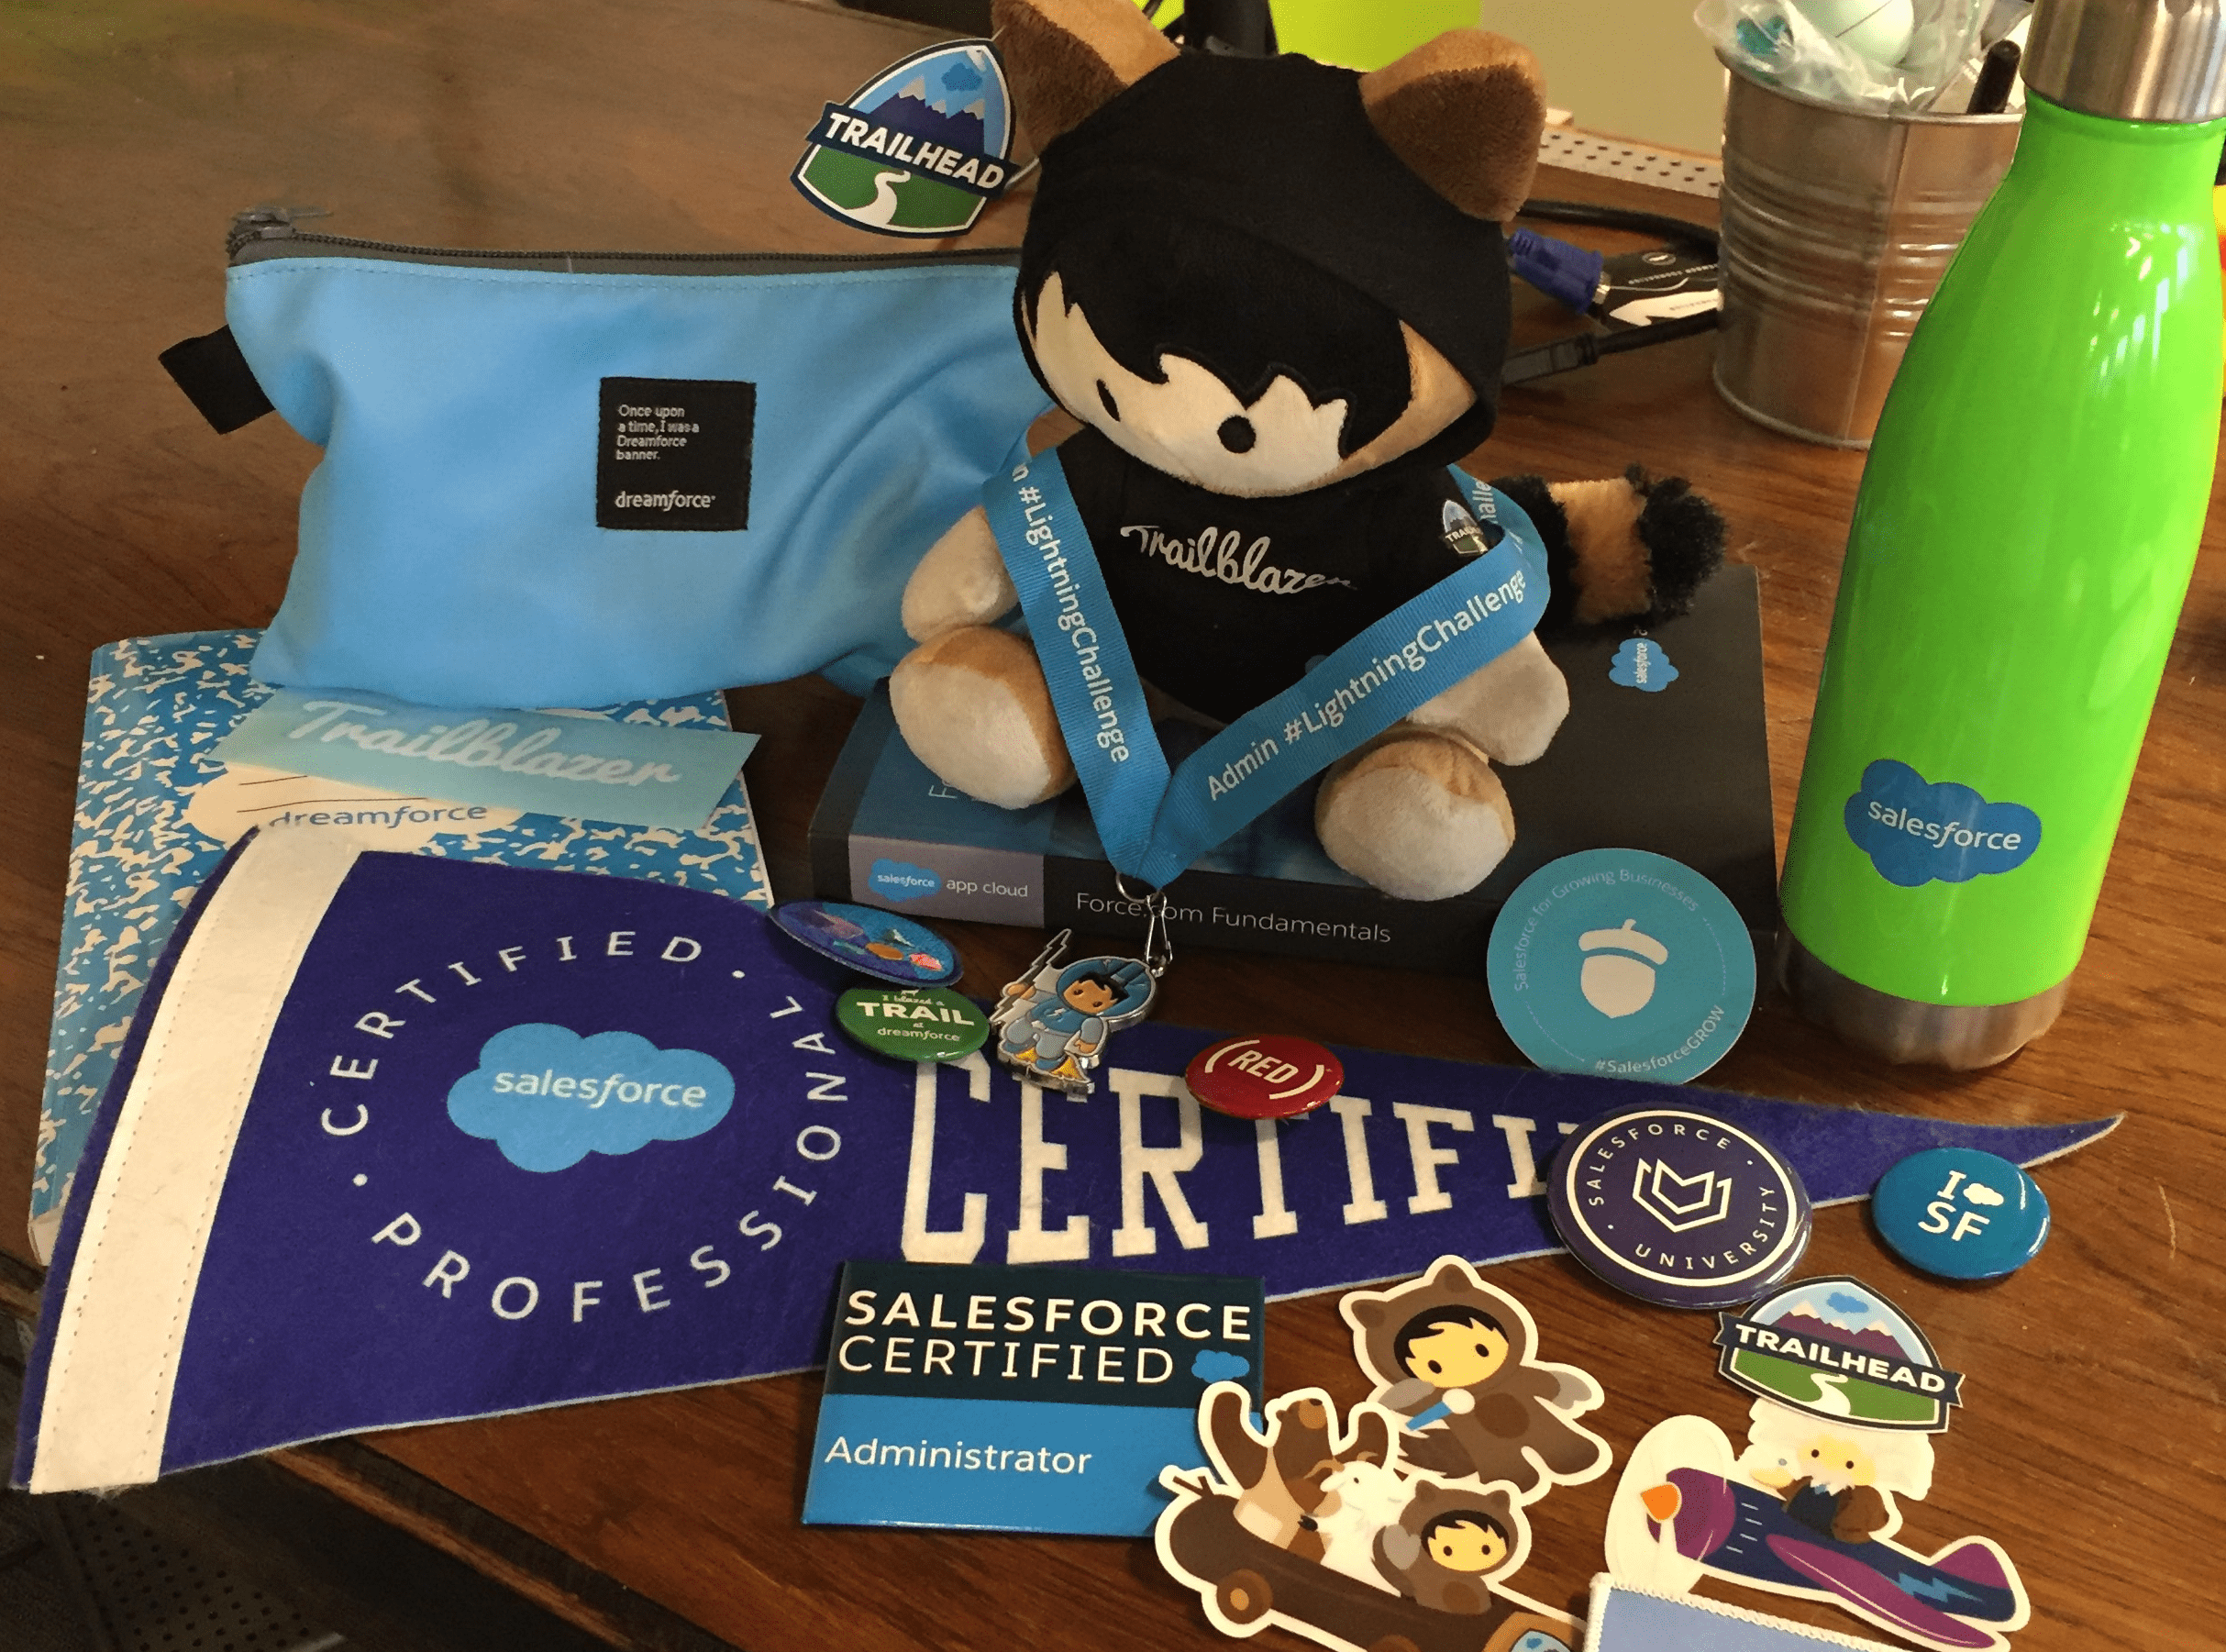 Salesforce certification swag